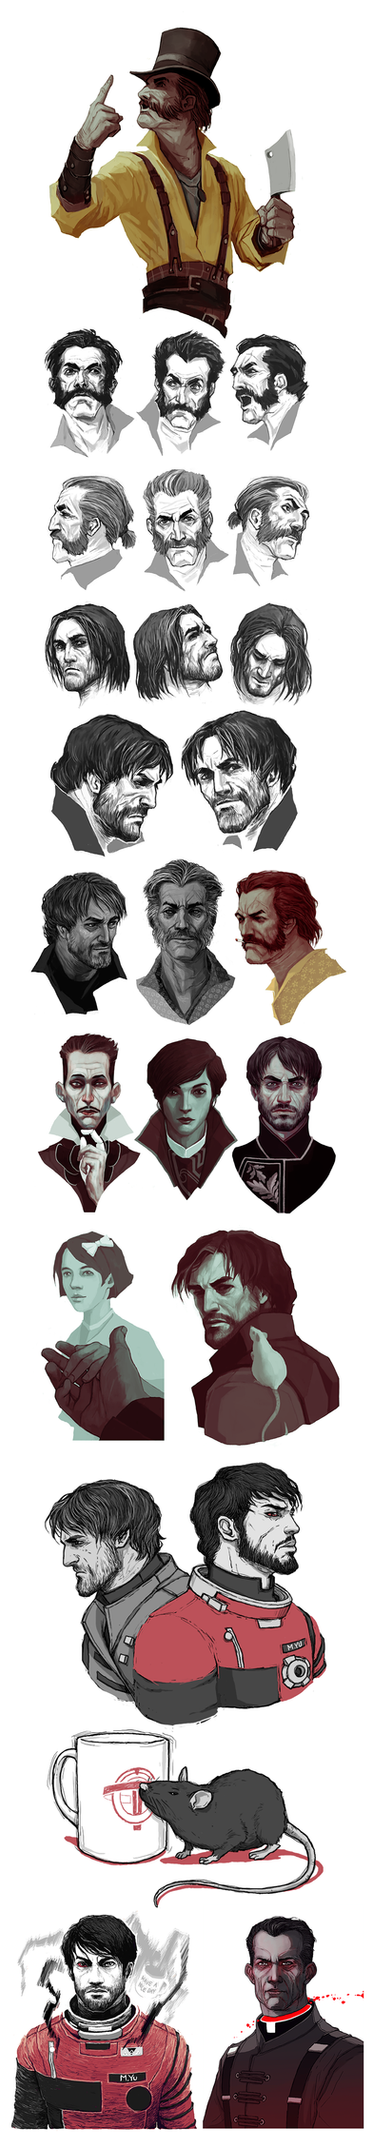 Dishonored: Sketchdump II by coupleofkooks